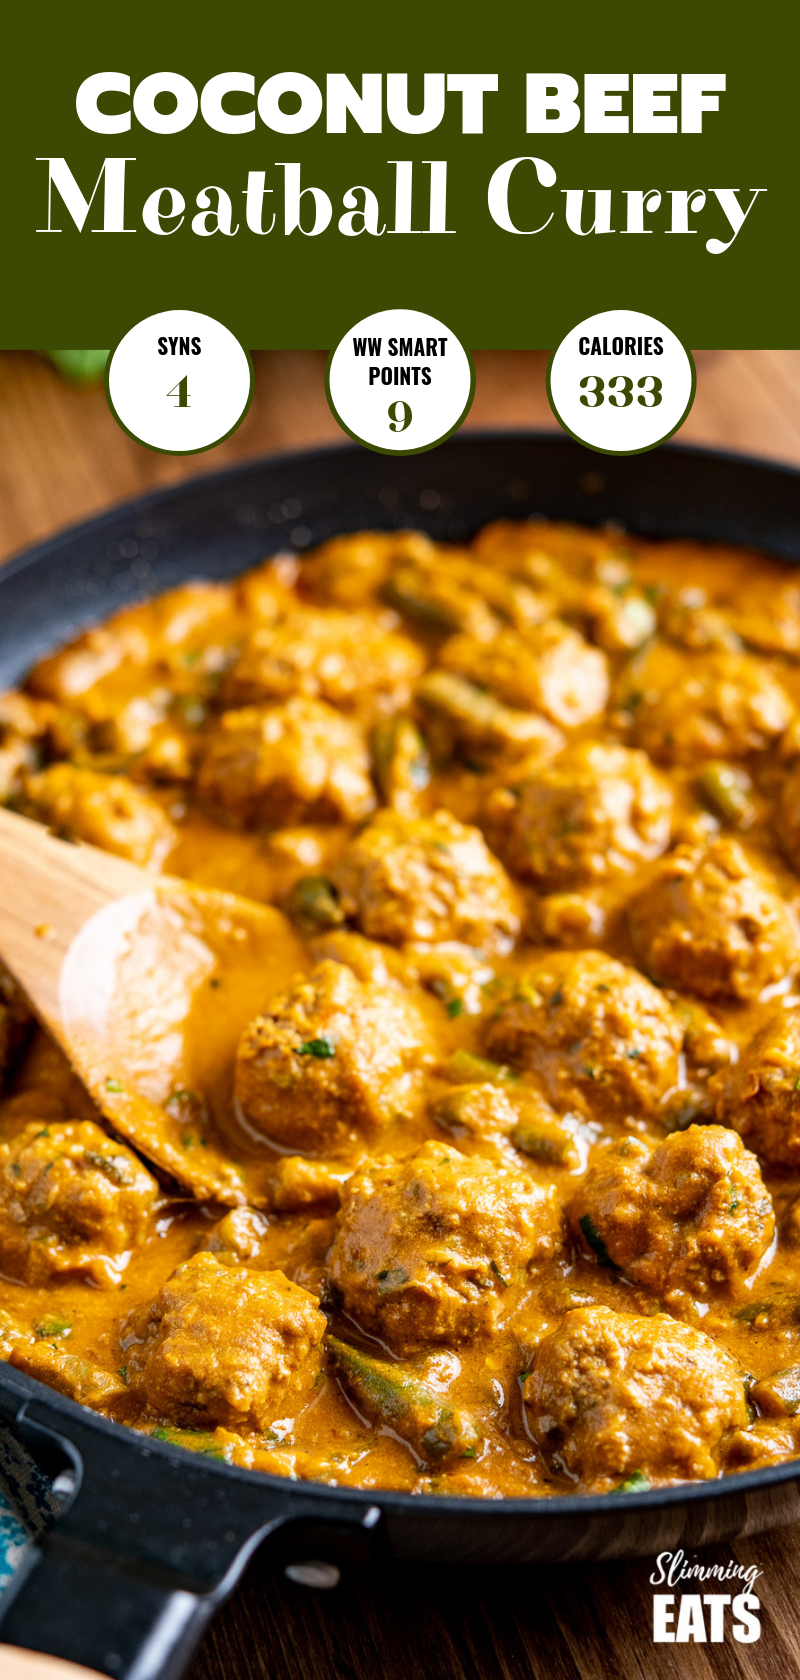 coconut beef meatballs curry in black frying pan with wooden spoon pin